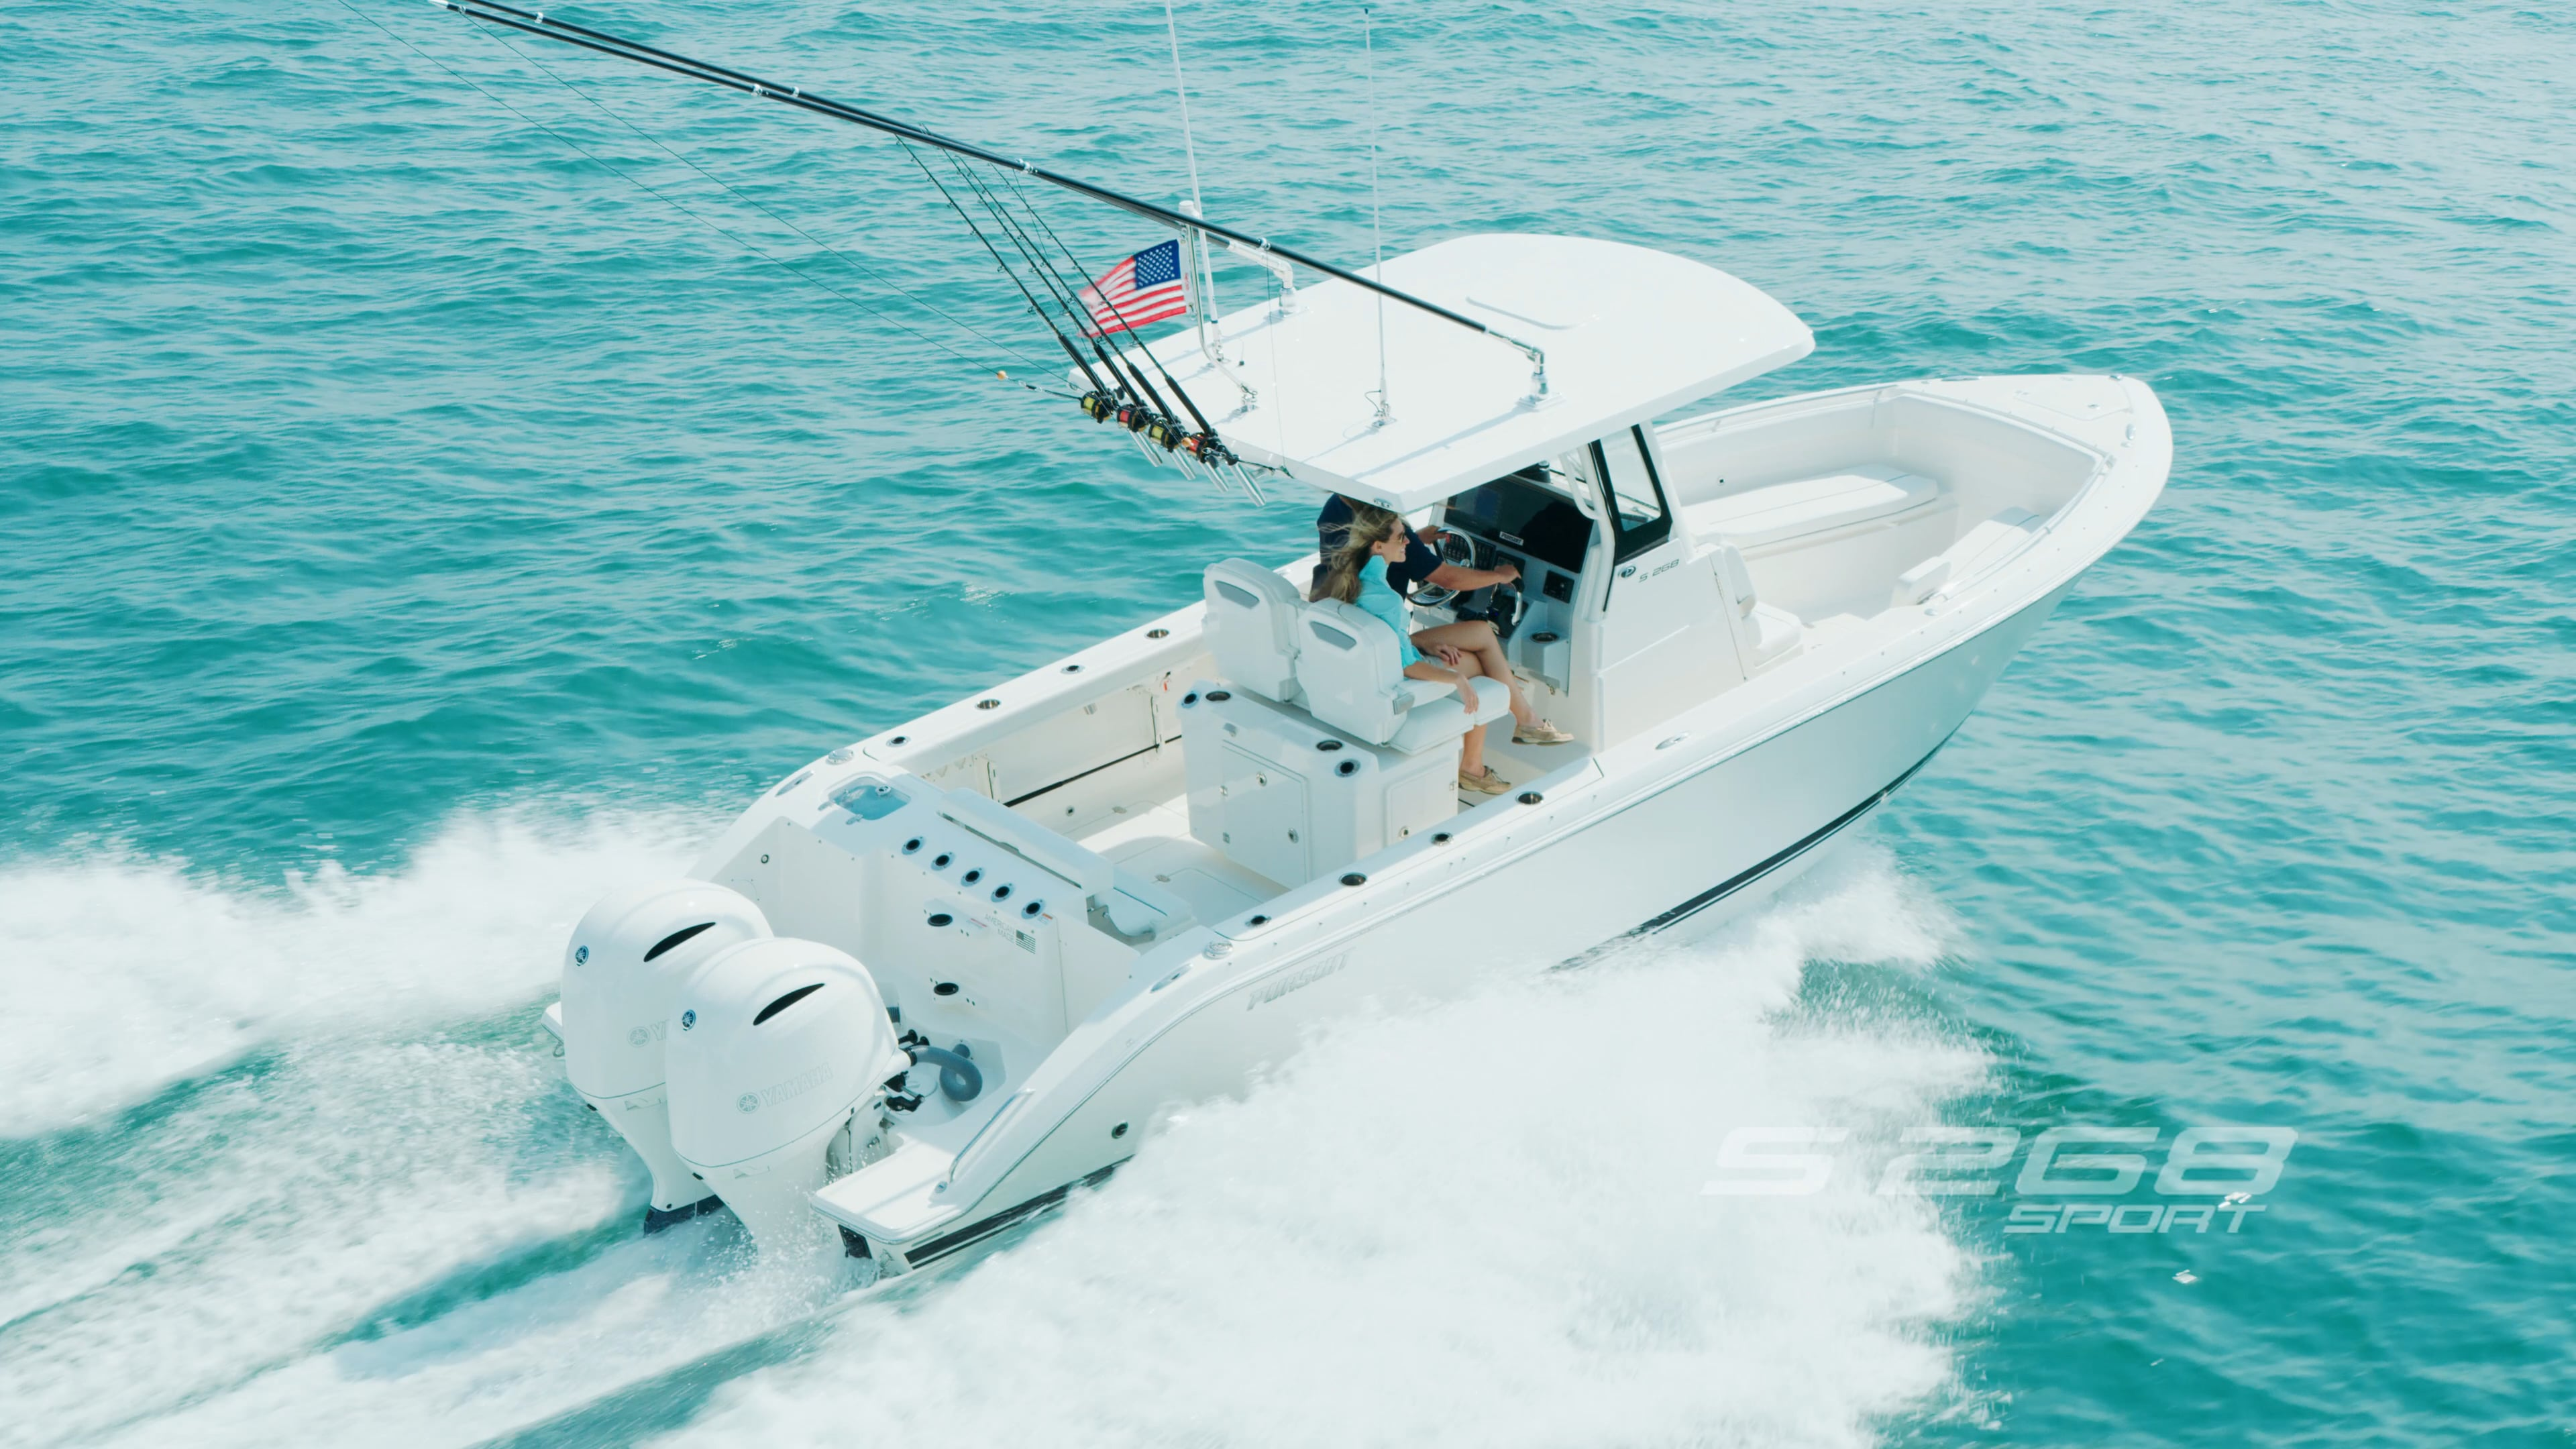 Aerial overhead profile view of S 268 Sport boat running right.